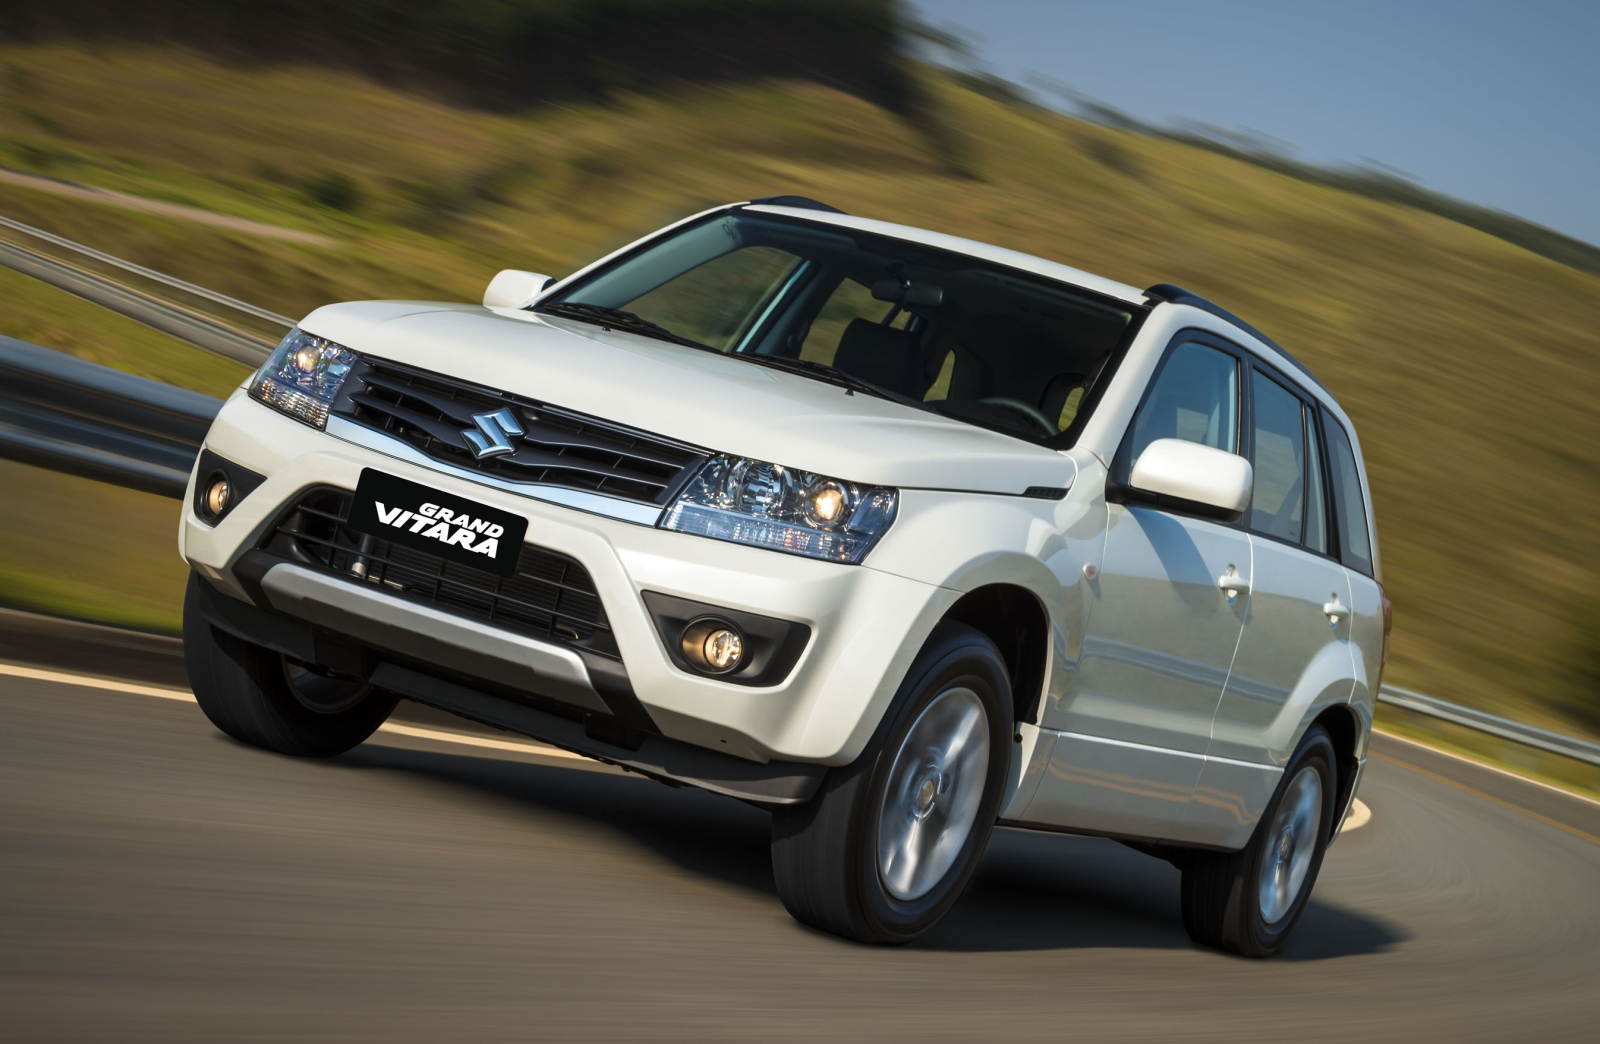 2013 Suzuki Grand Vitara - Information and photos - MOMENTcar